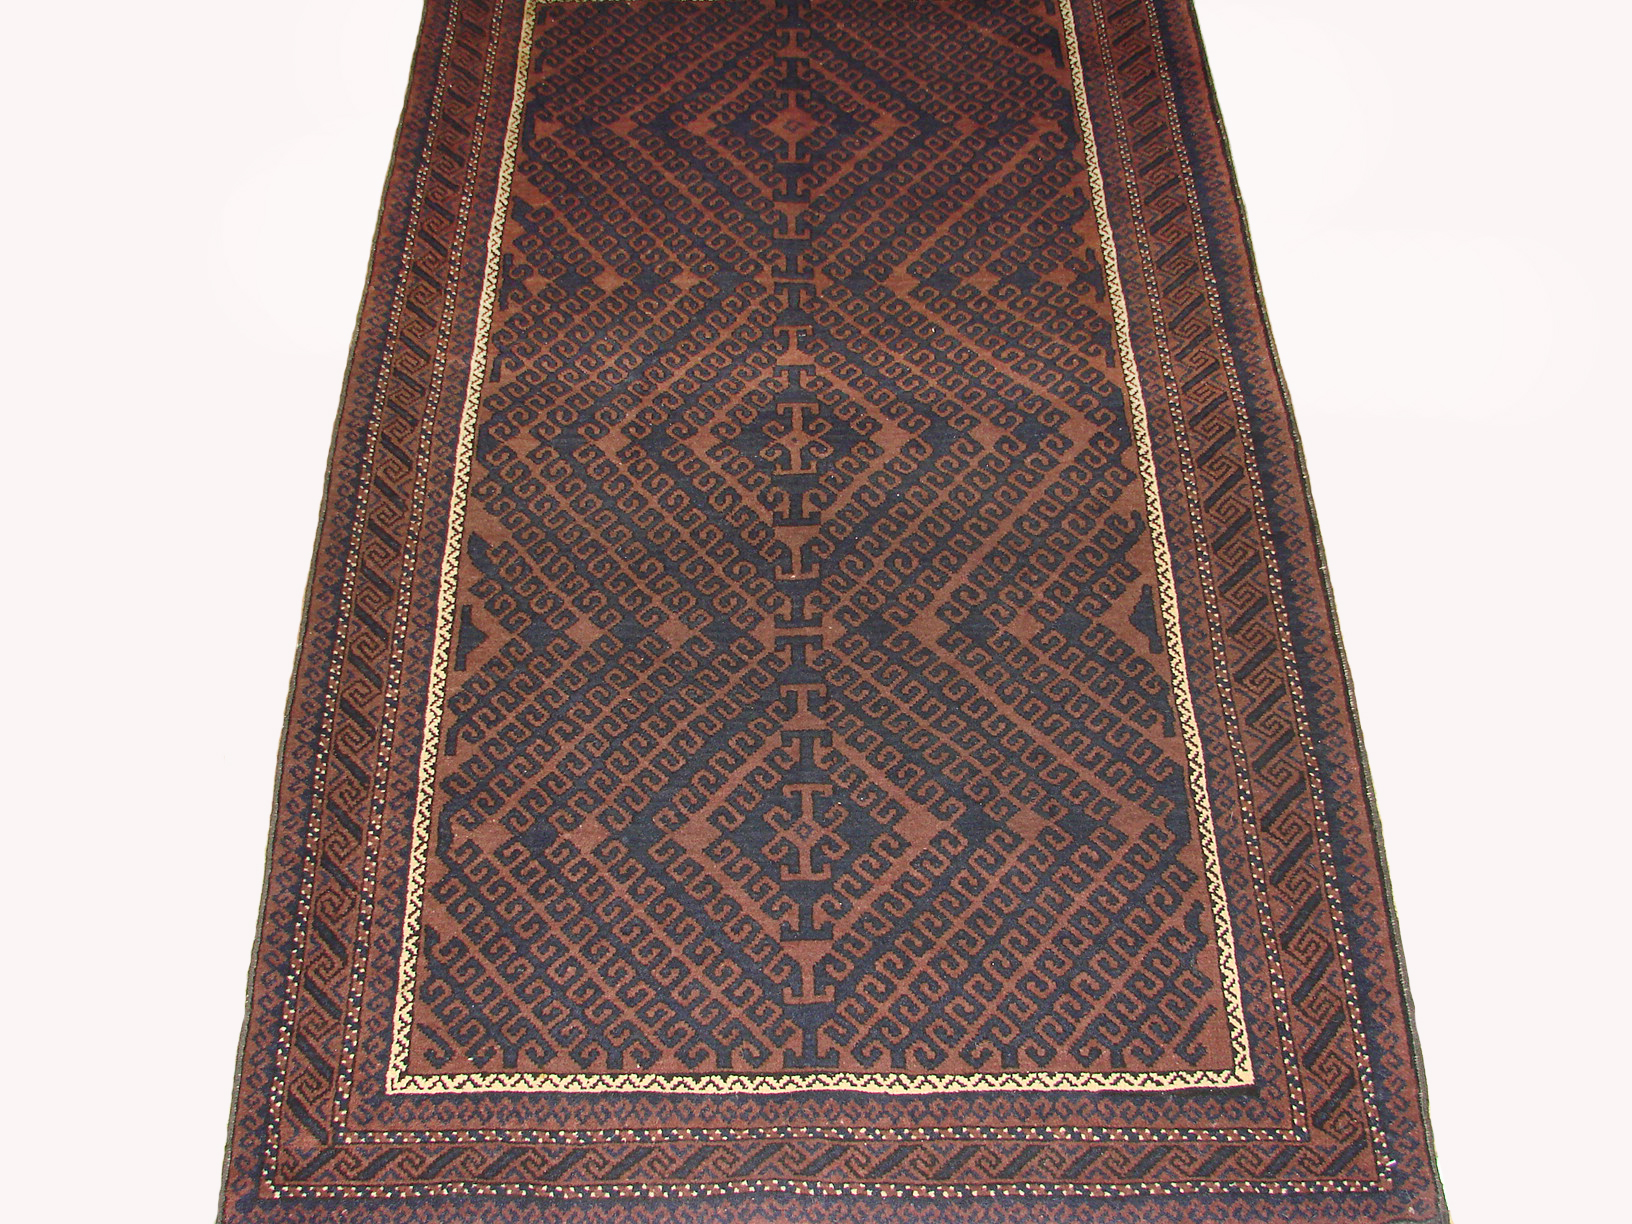 4x6 Kazak Hand Knotted Wool Area Rug - MR19451